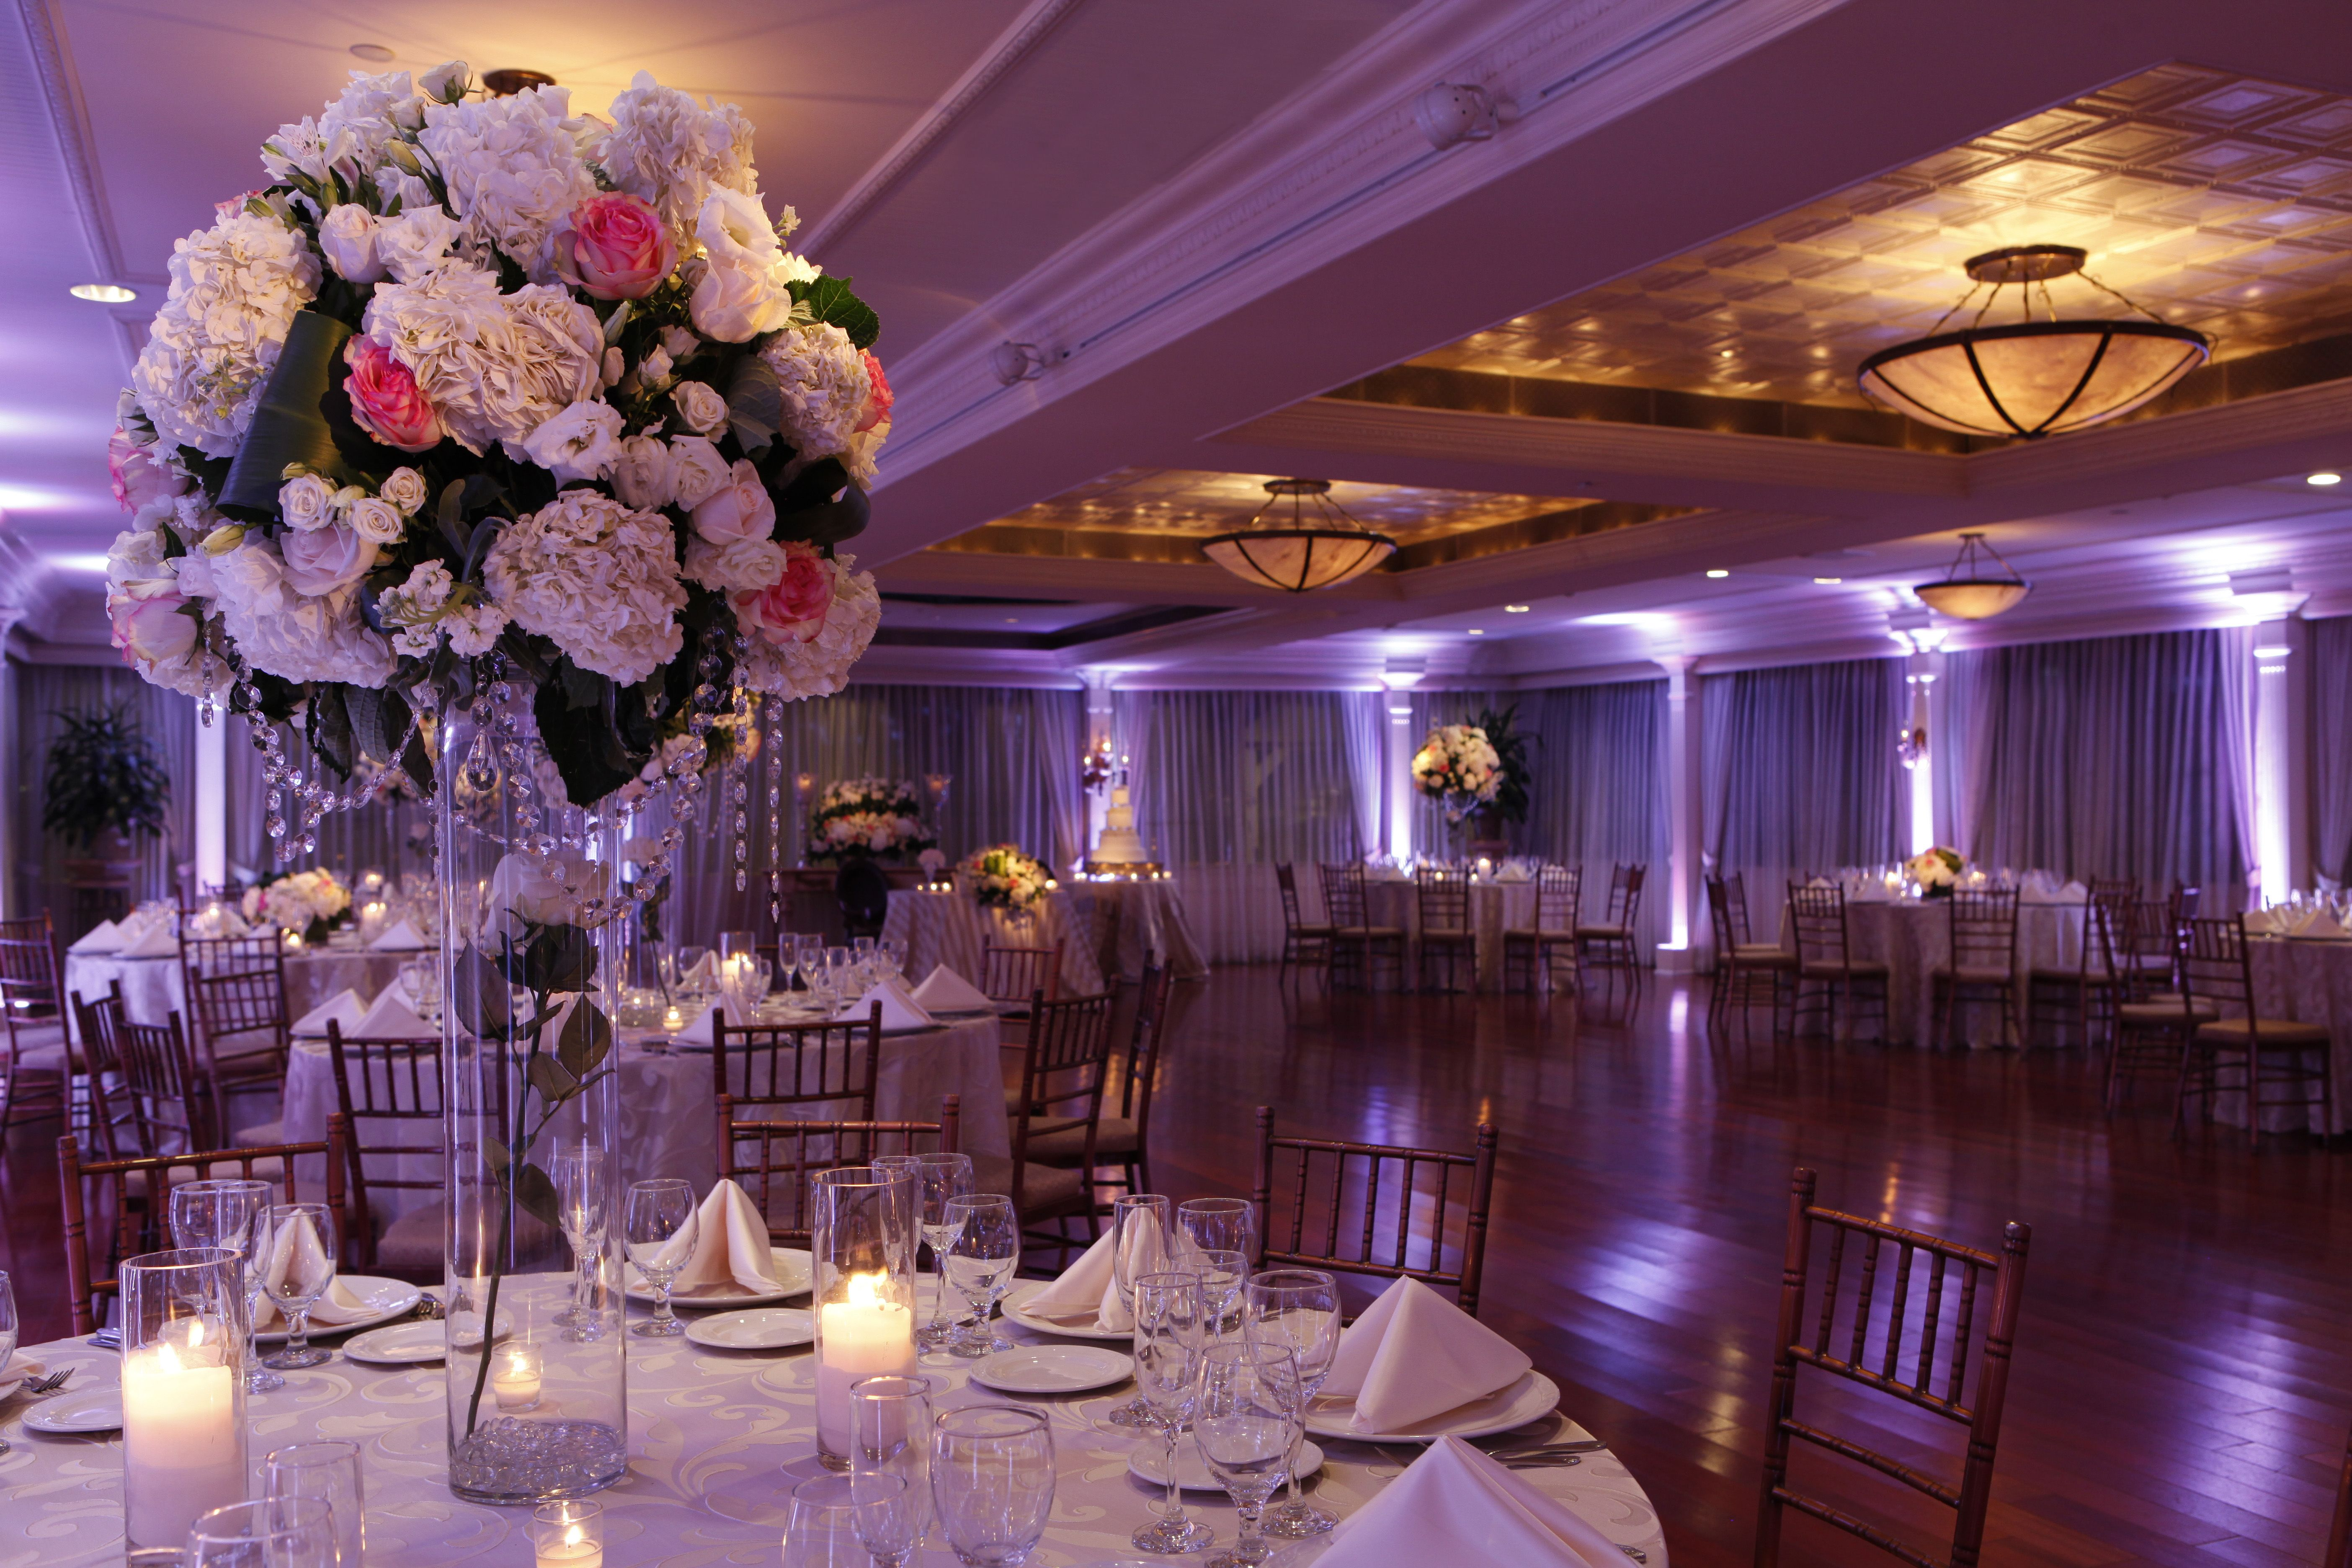 Long Island Wedding Venue On The Gold Coast Featuring Elegant Ballrooms And Luxurious Hotel